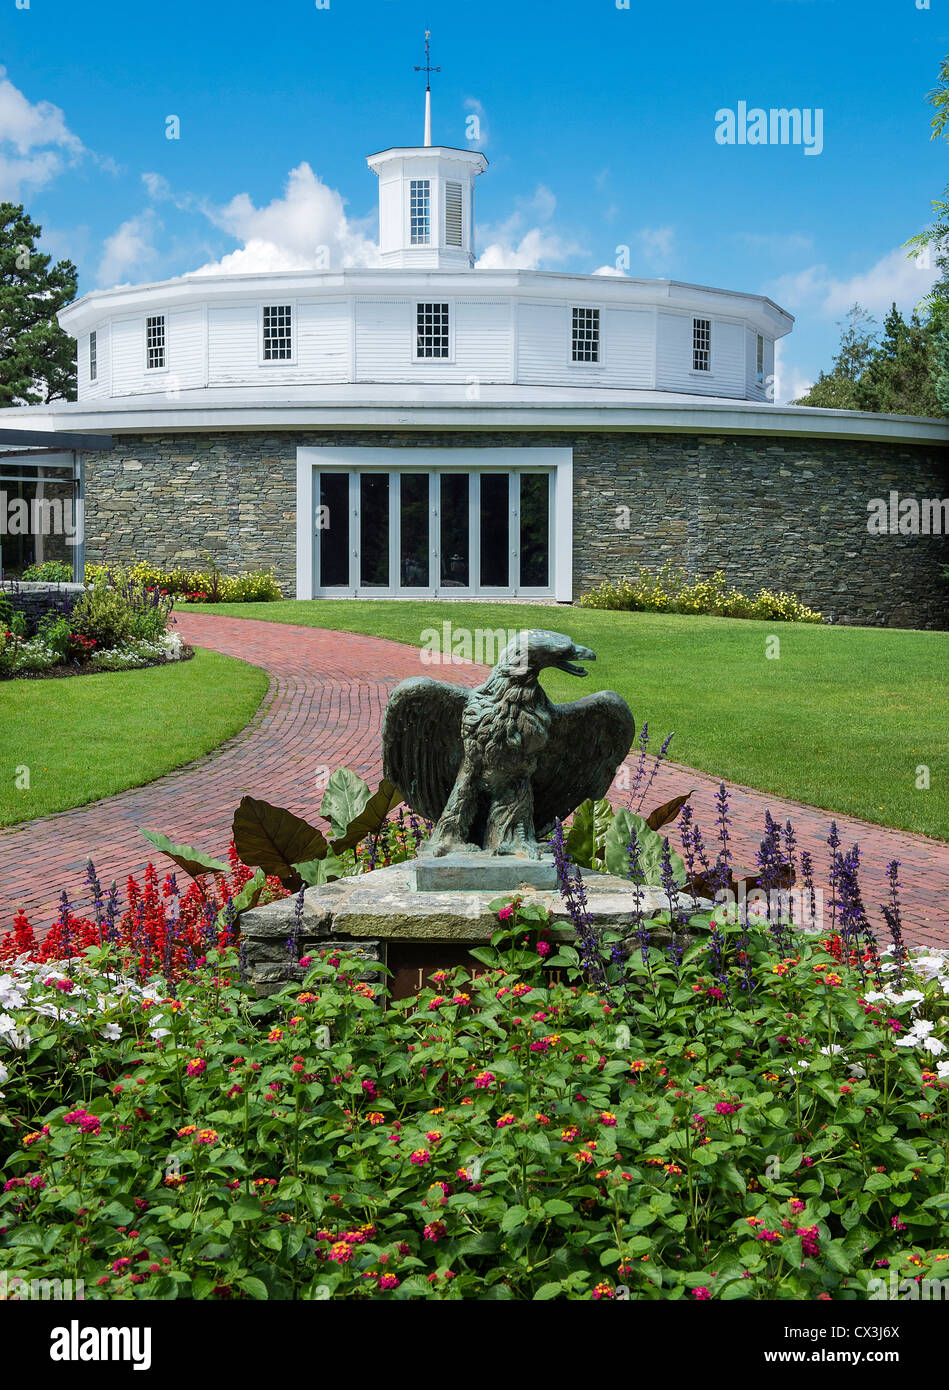 Automobile Museum, Heritage Museums And Gardens, Sandwich, Cape Cod,  Massachusetts, USA